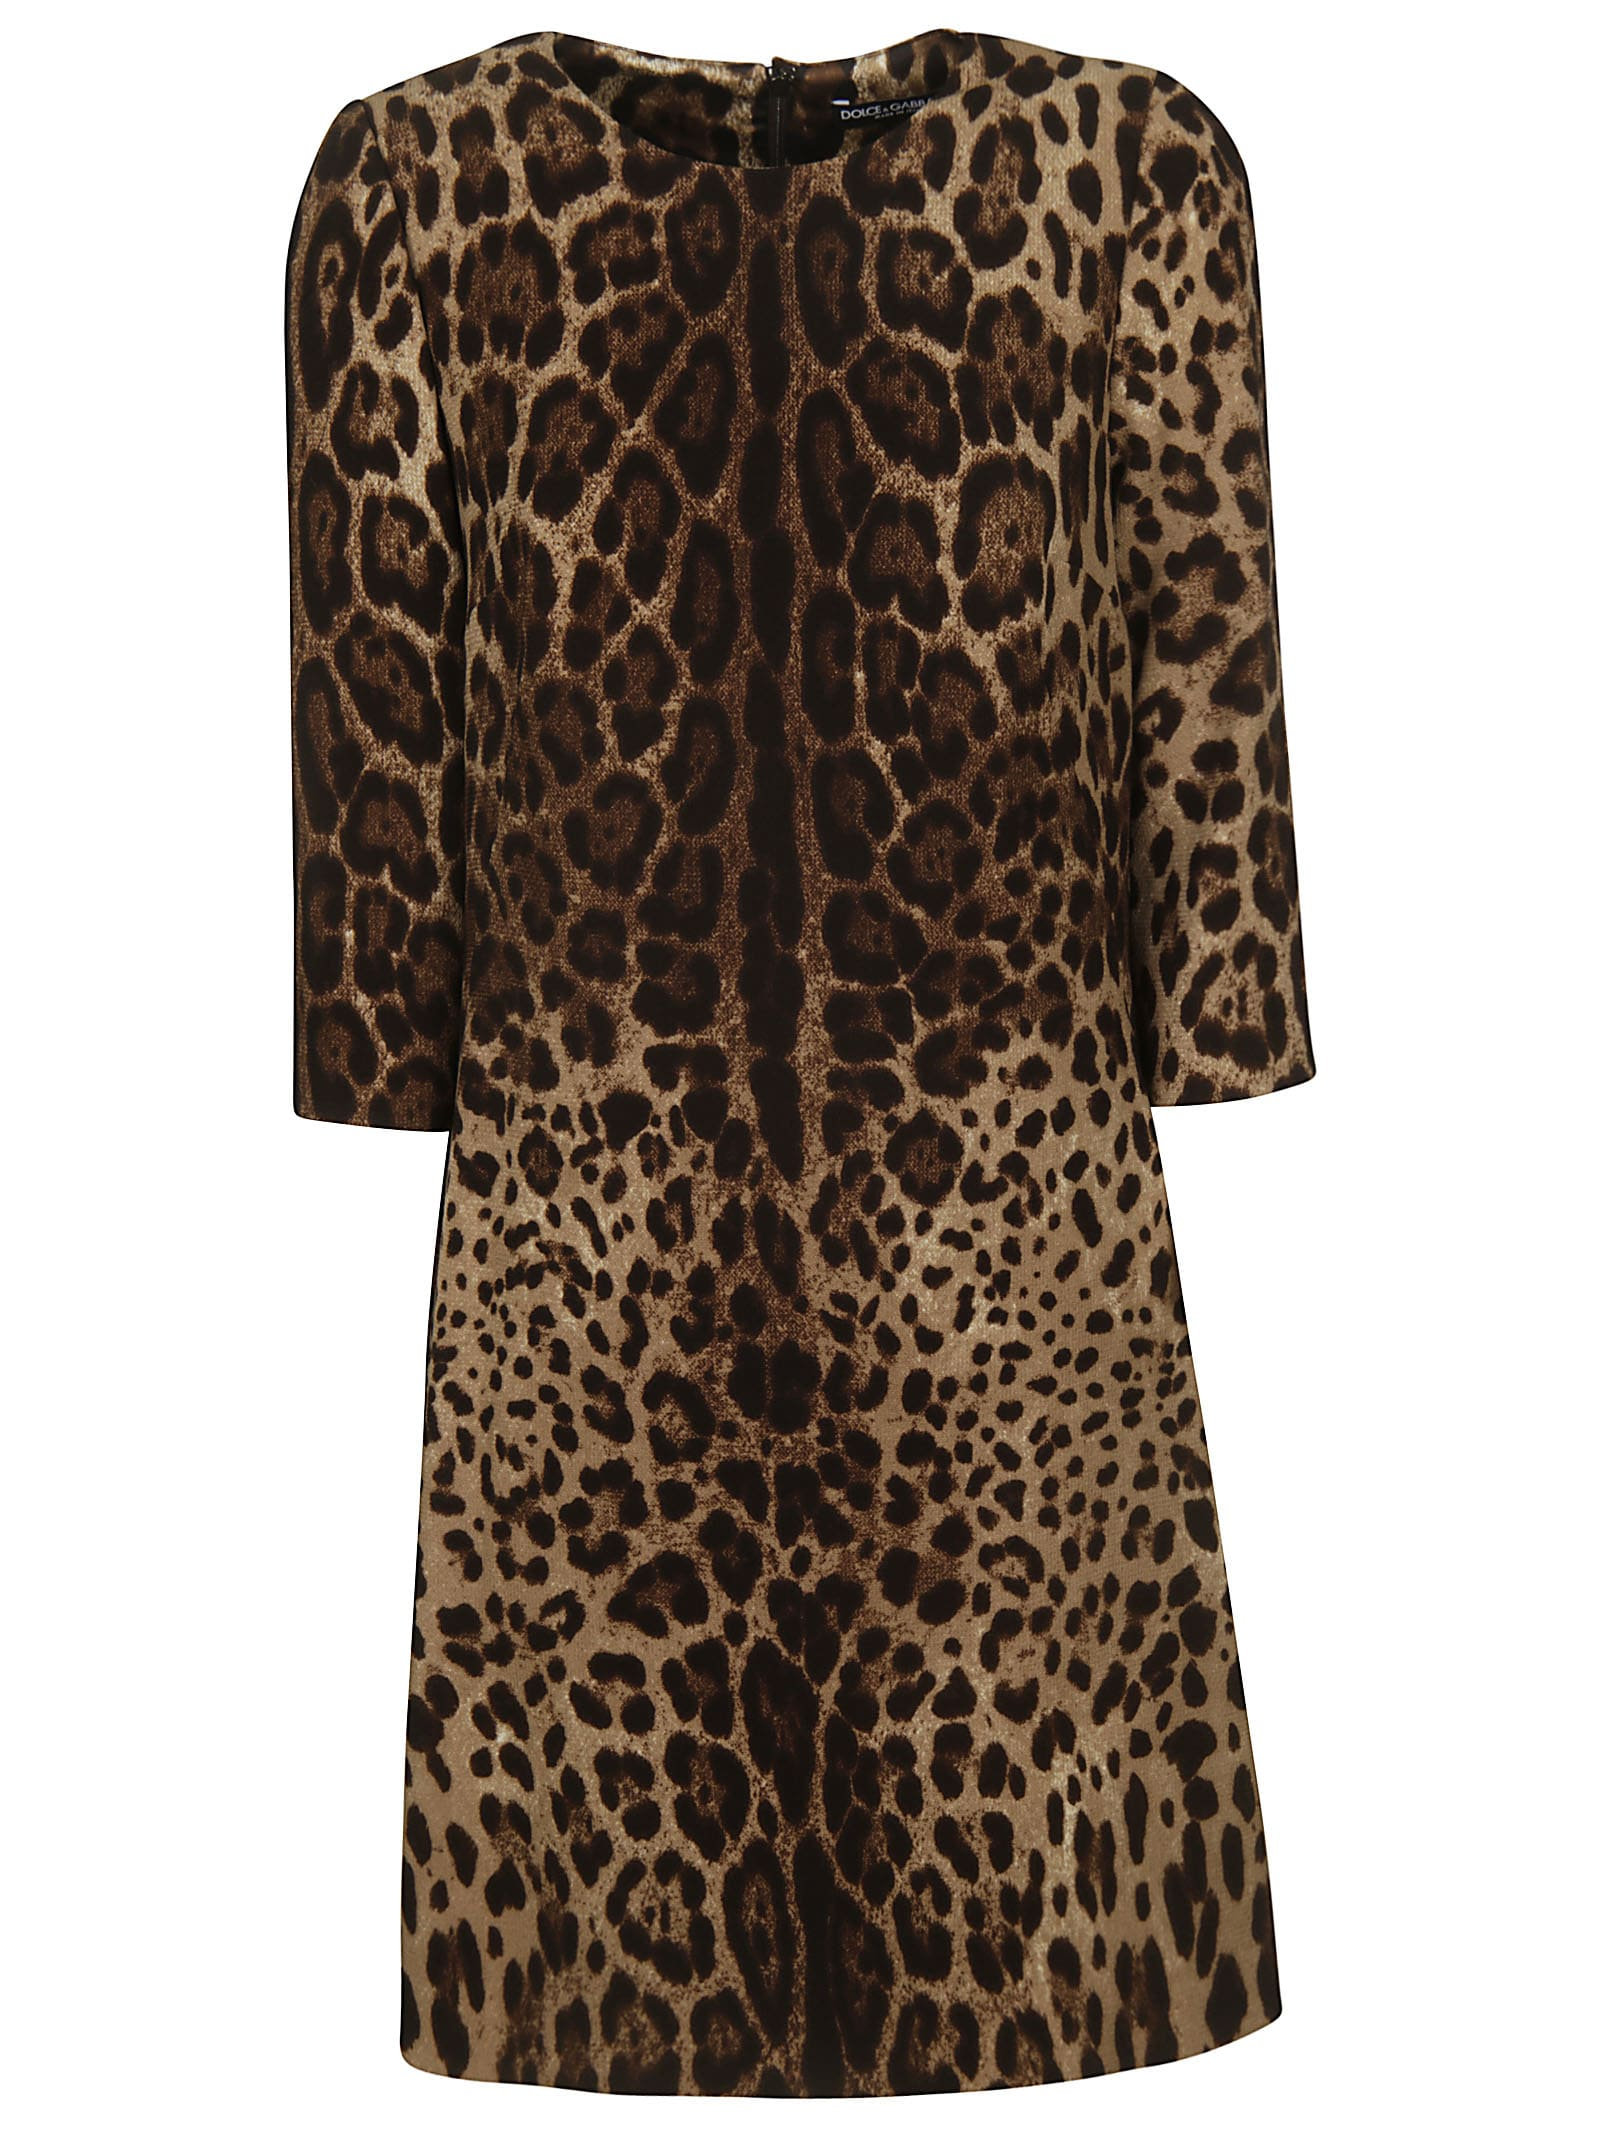 Dolce & Gabbana Leopard Midi Dress